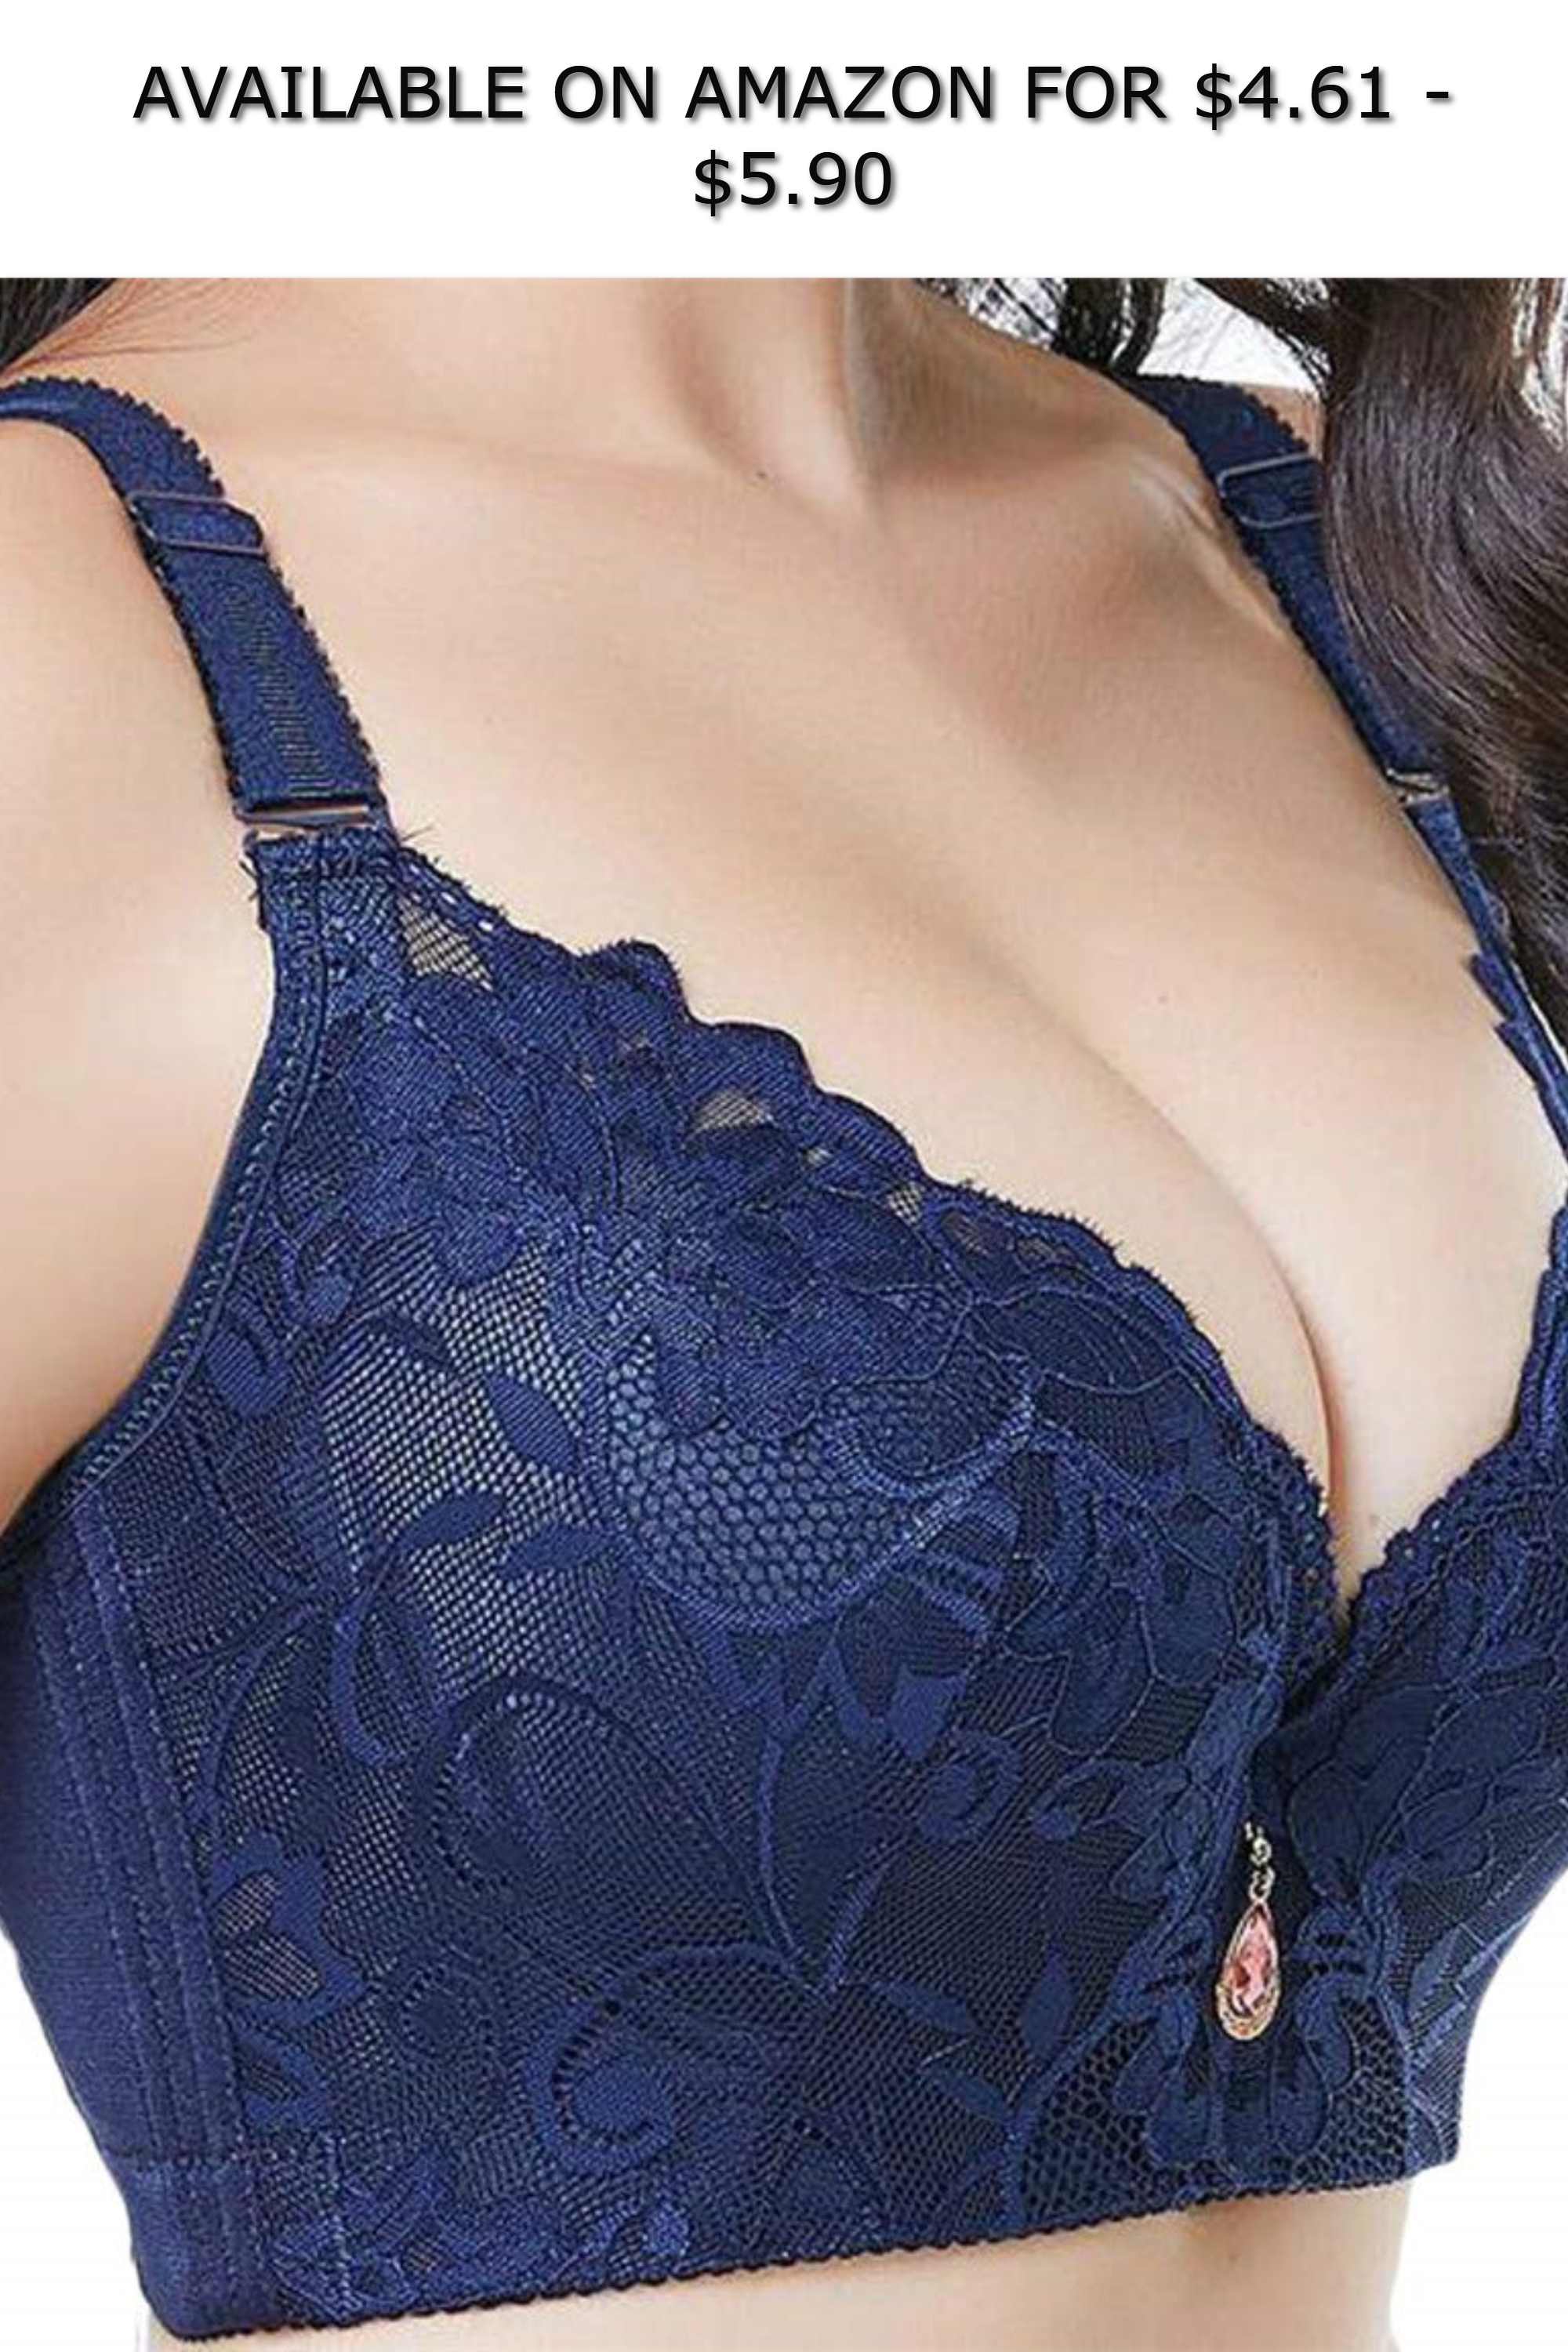 588aabc86340f Hajotrawa Women Full-Coverage Lounge Minimizer-Bra Lace Strap Lingerie  Everyday Bras ◇ AVAILABLE